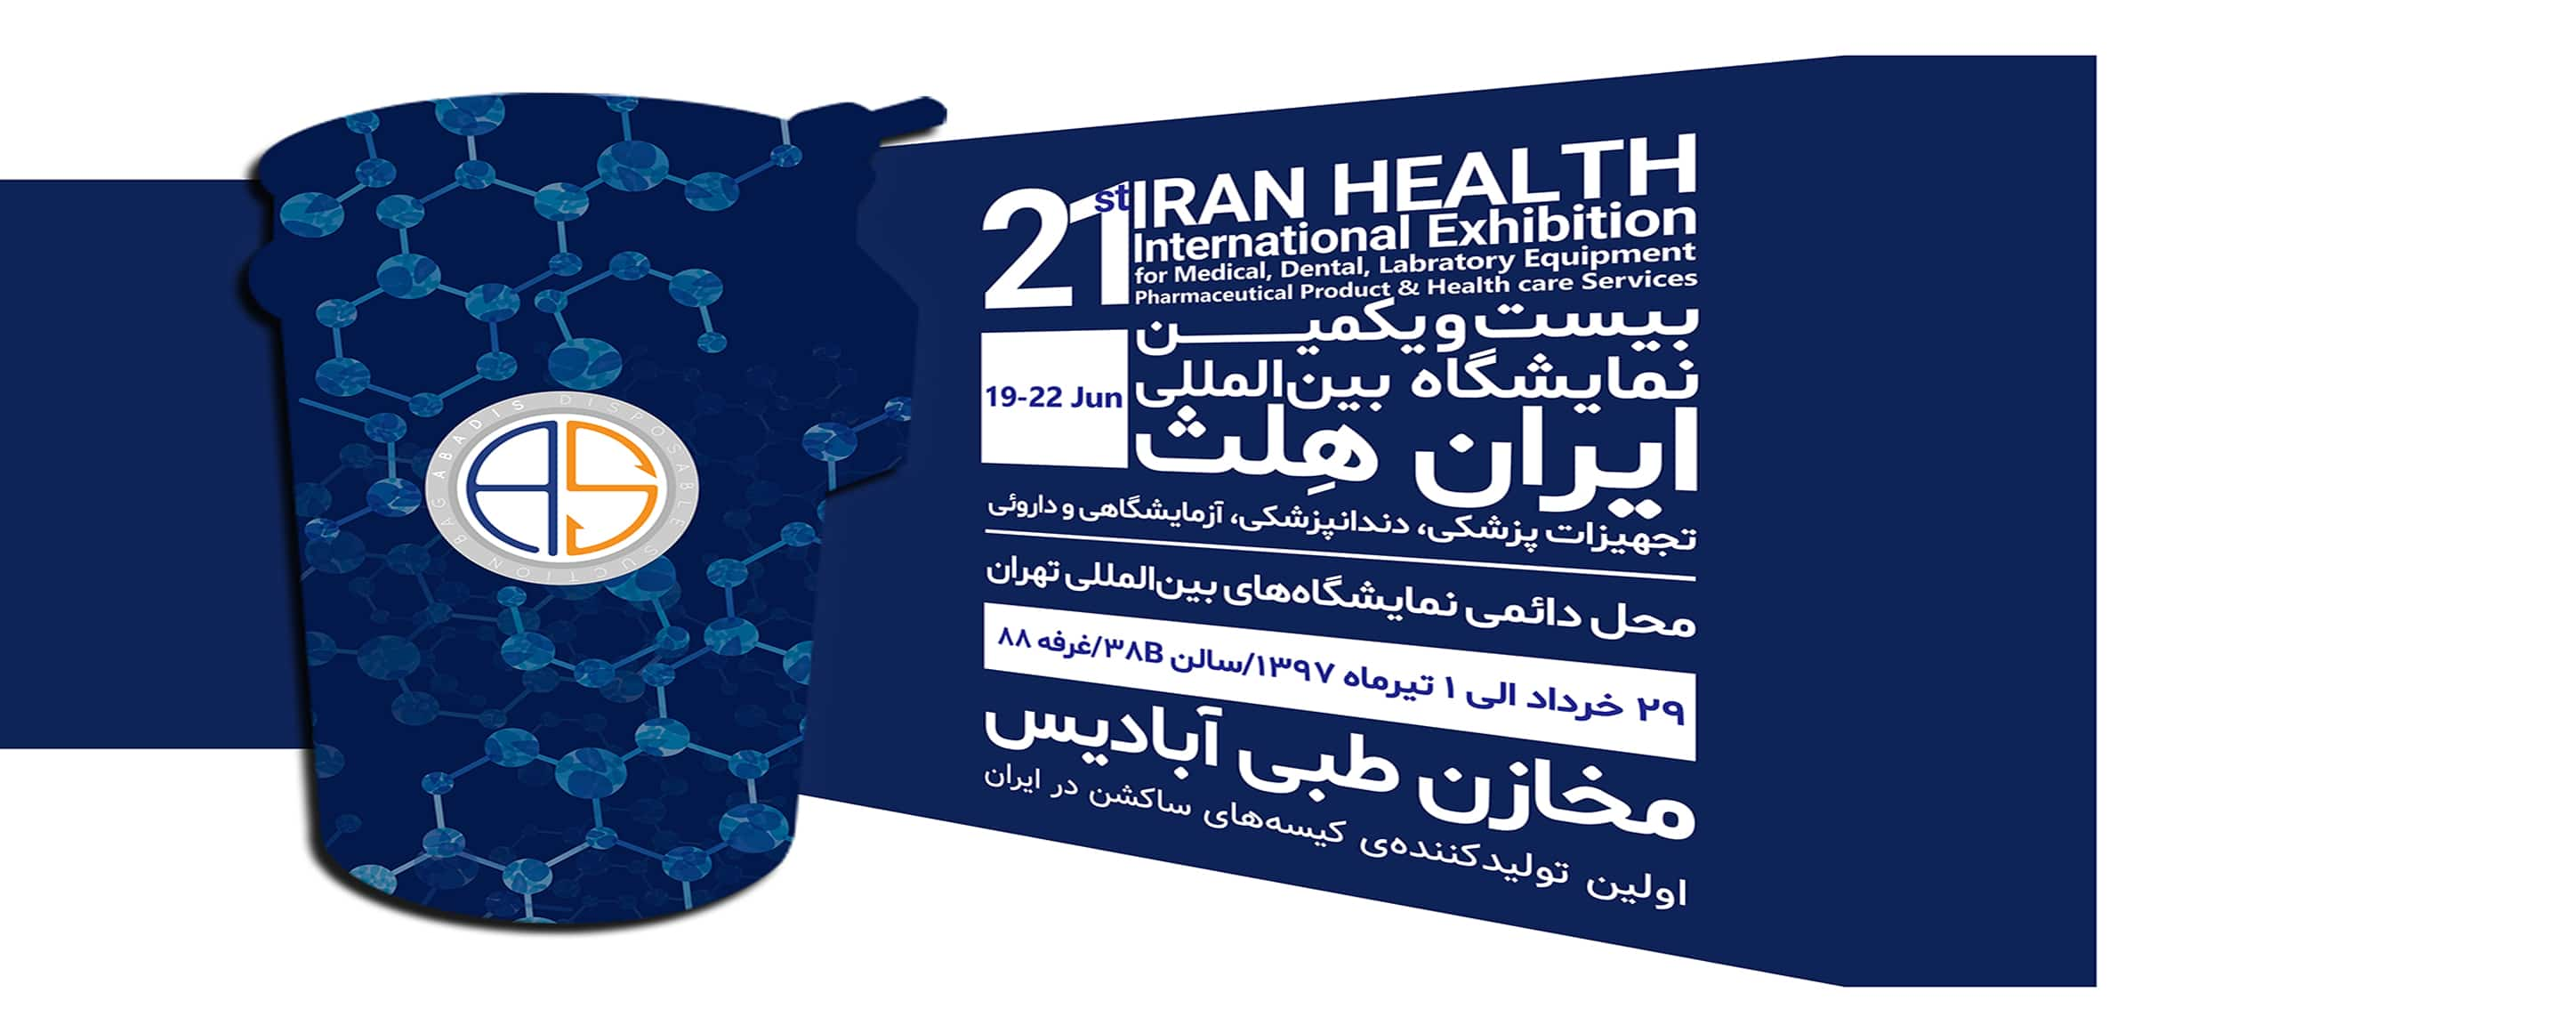 The presence of Abadis Medical Tanks at the International Iran Health